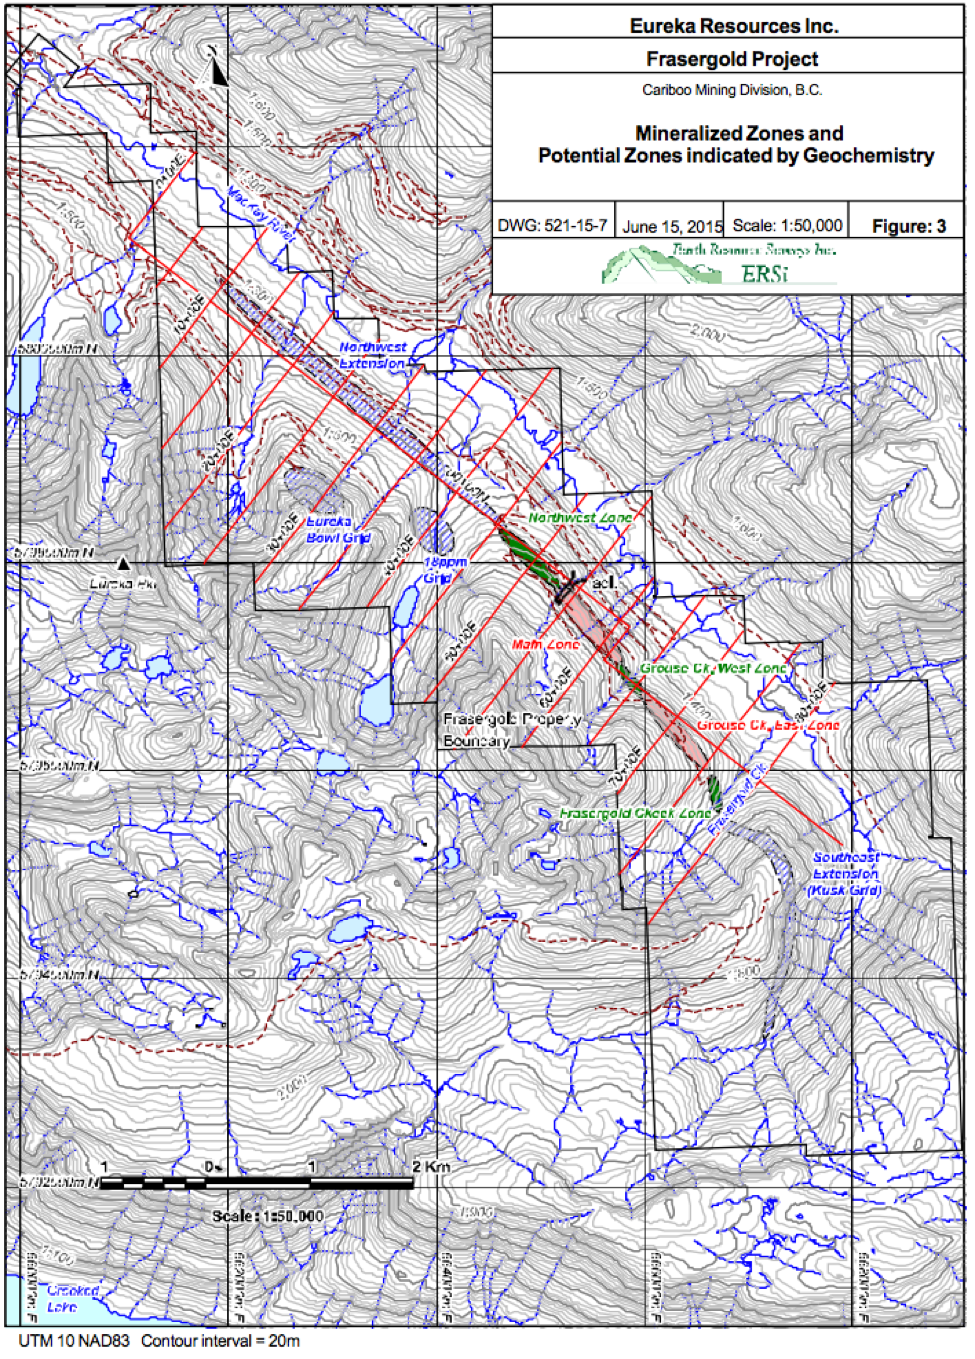 Mineralized Zones interpreted by Eureka Resources prior to KORE staking and data compilation.